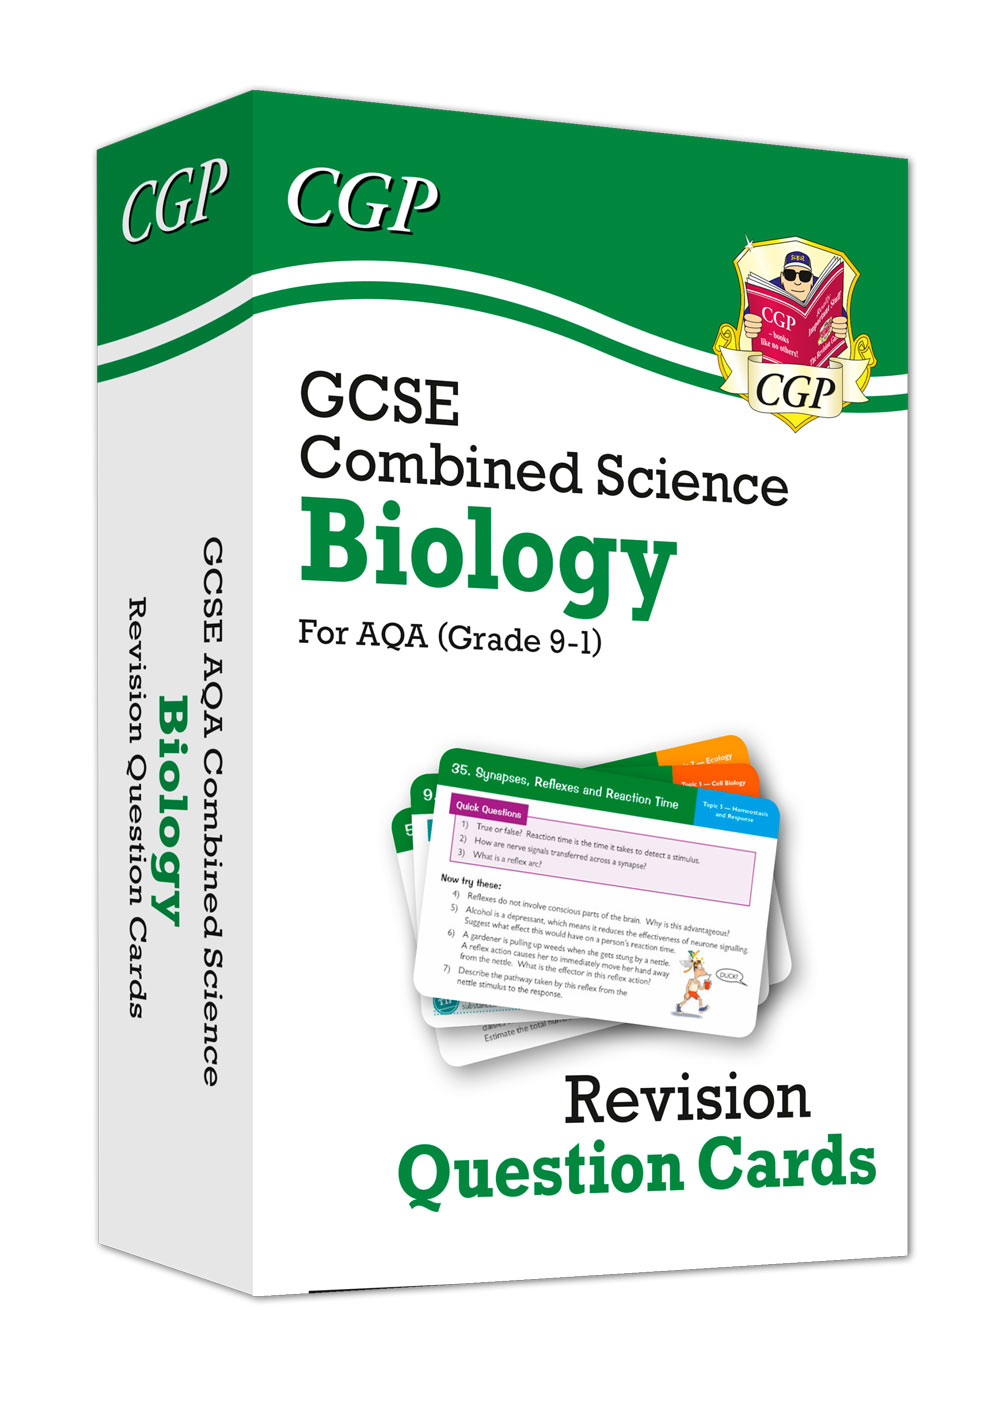 SCBAF41 - New 9-1 GCSE Combined Science: Biology AQA Revision Question Cards